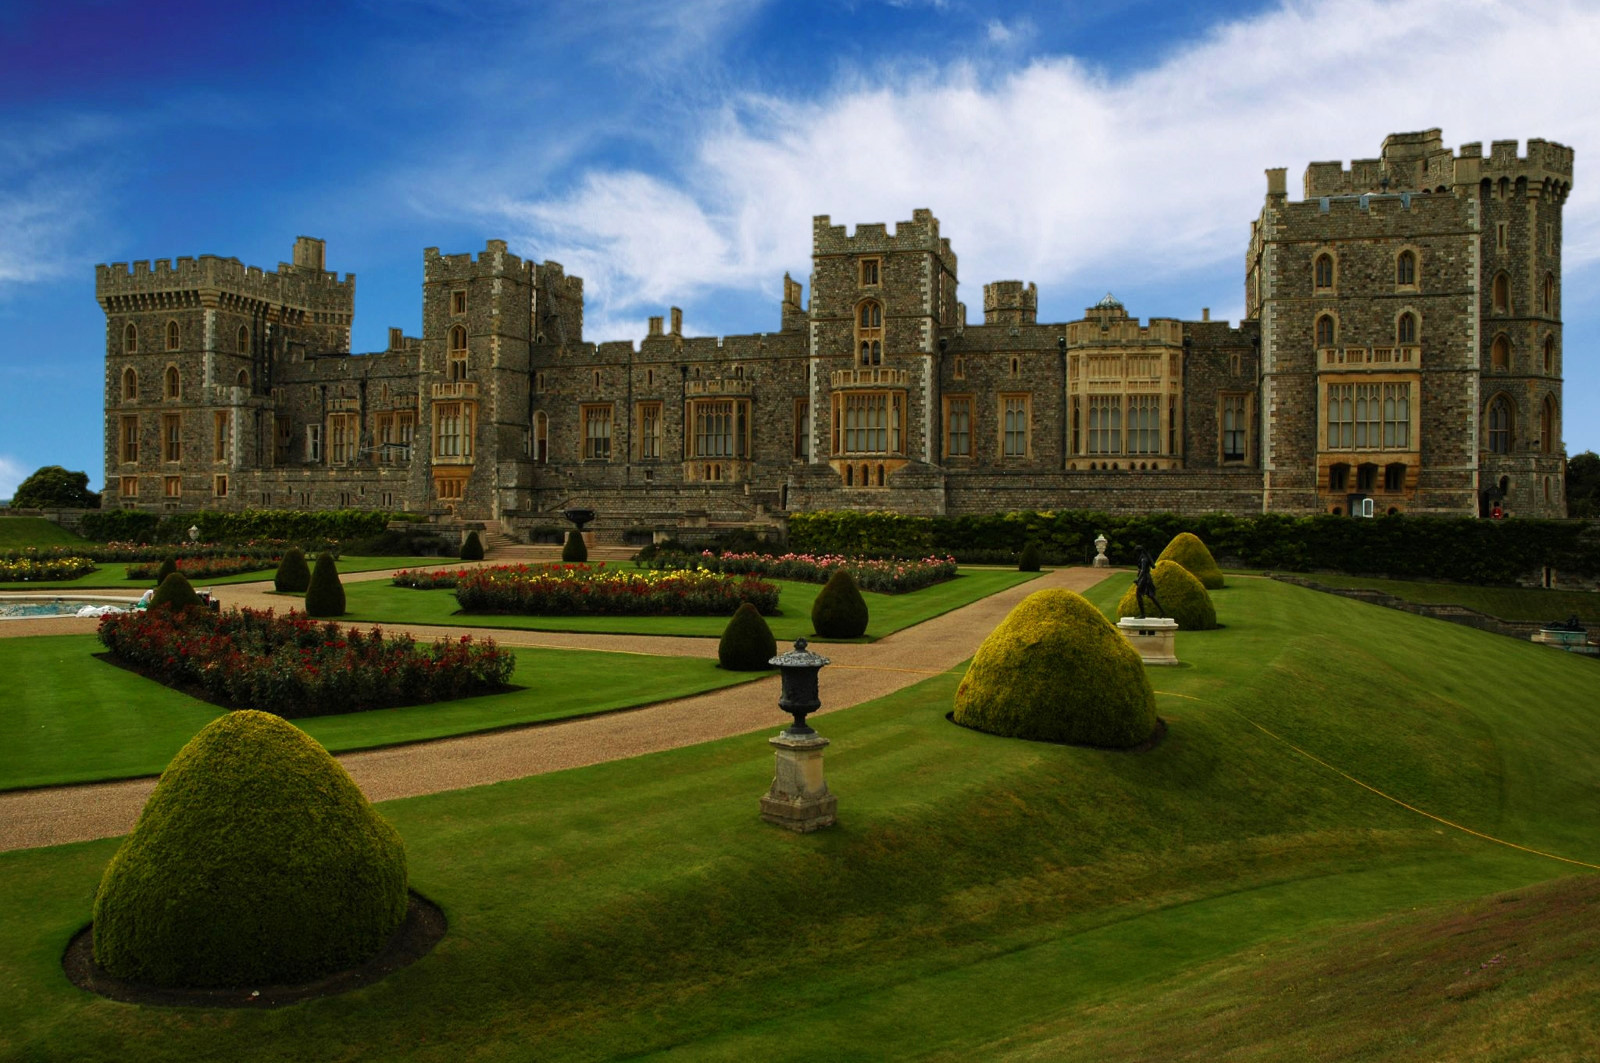 Windsor Castle, east side gardens and facade. Credit David Watterson